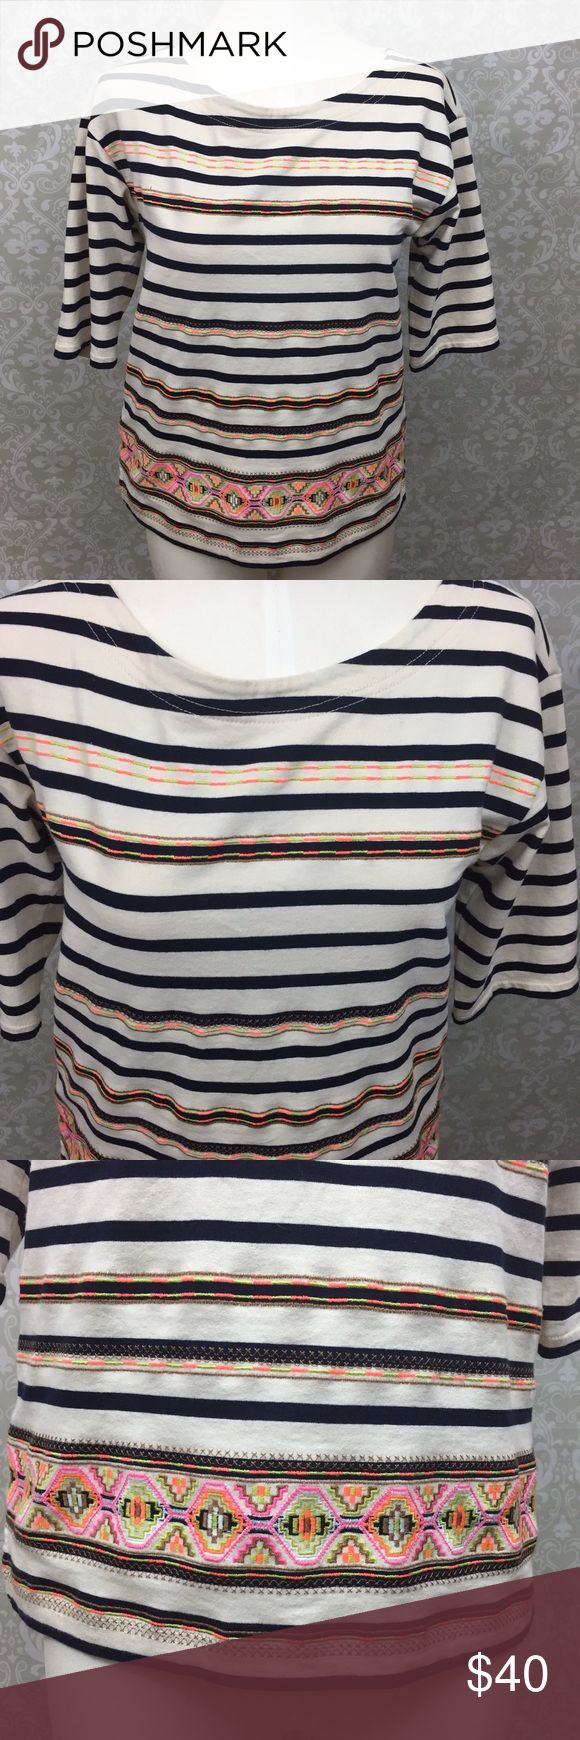 🌞J. Crew Aztec Embroidered Print Striped Tee J. Crew Neon Aztec Embroidered Print Striped Quarter Sleeve Tee Womens Small   Armpit to armpit measurement: 19 inches  Length: 24 inches  This has been gently worn with no major flaws.  Please refer to photos for more details. J. Crew Tops Blouses